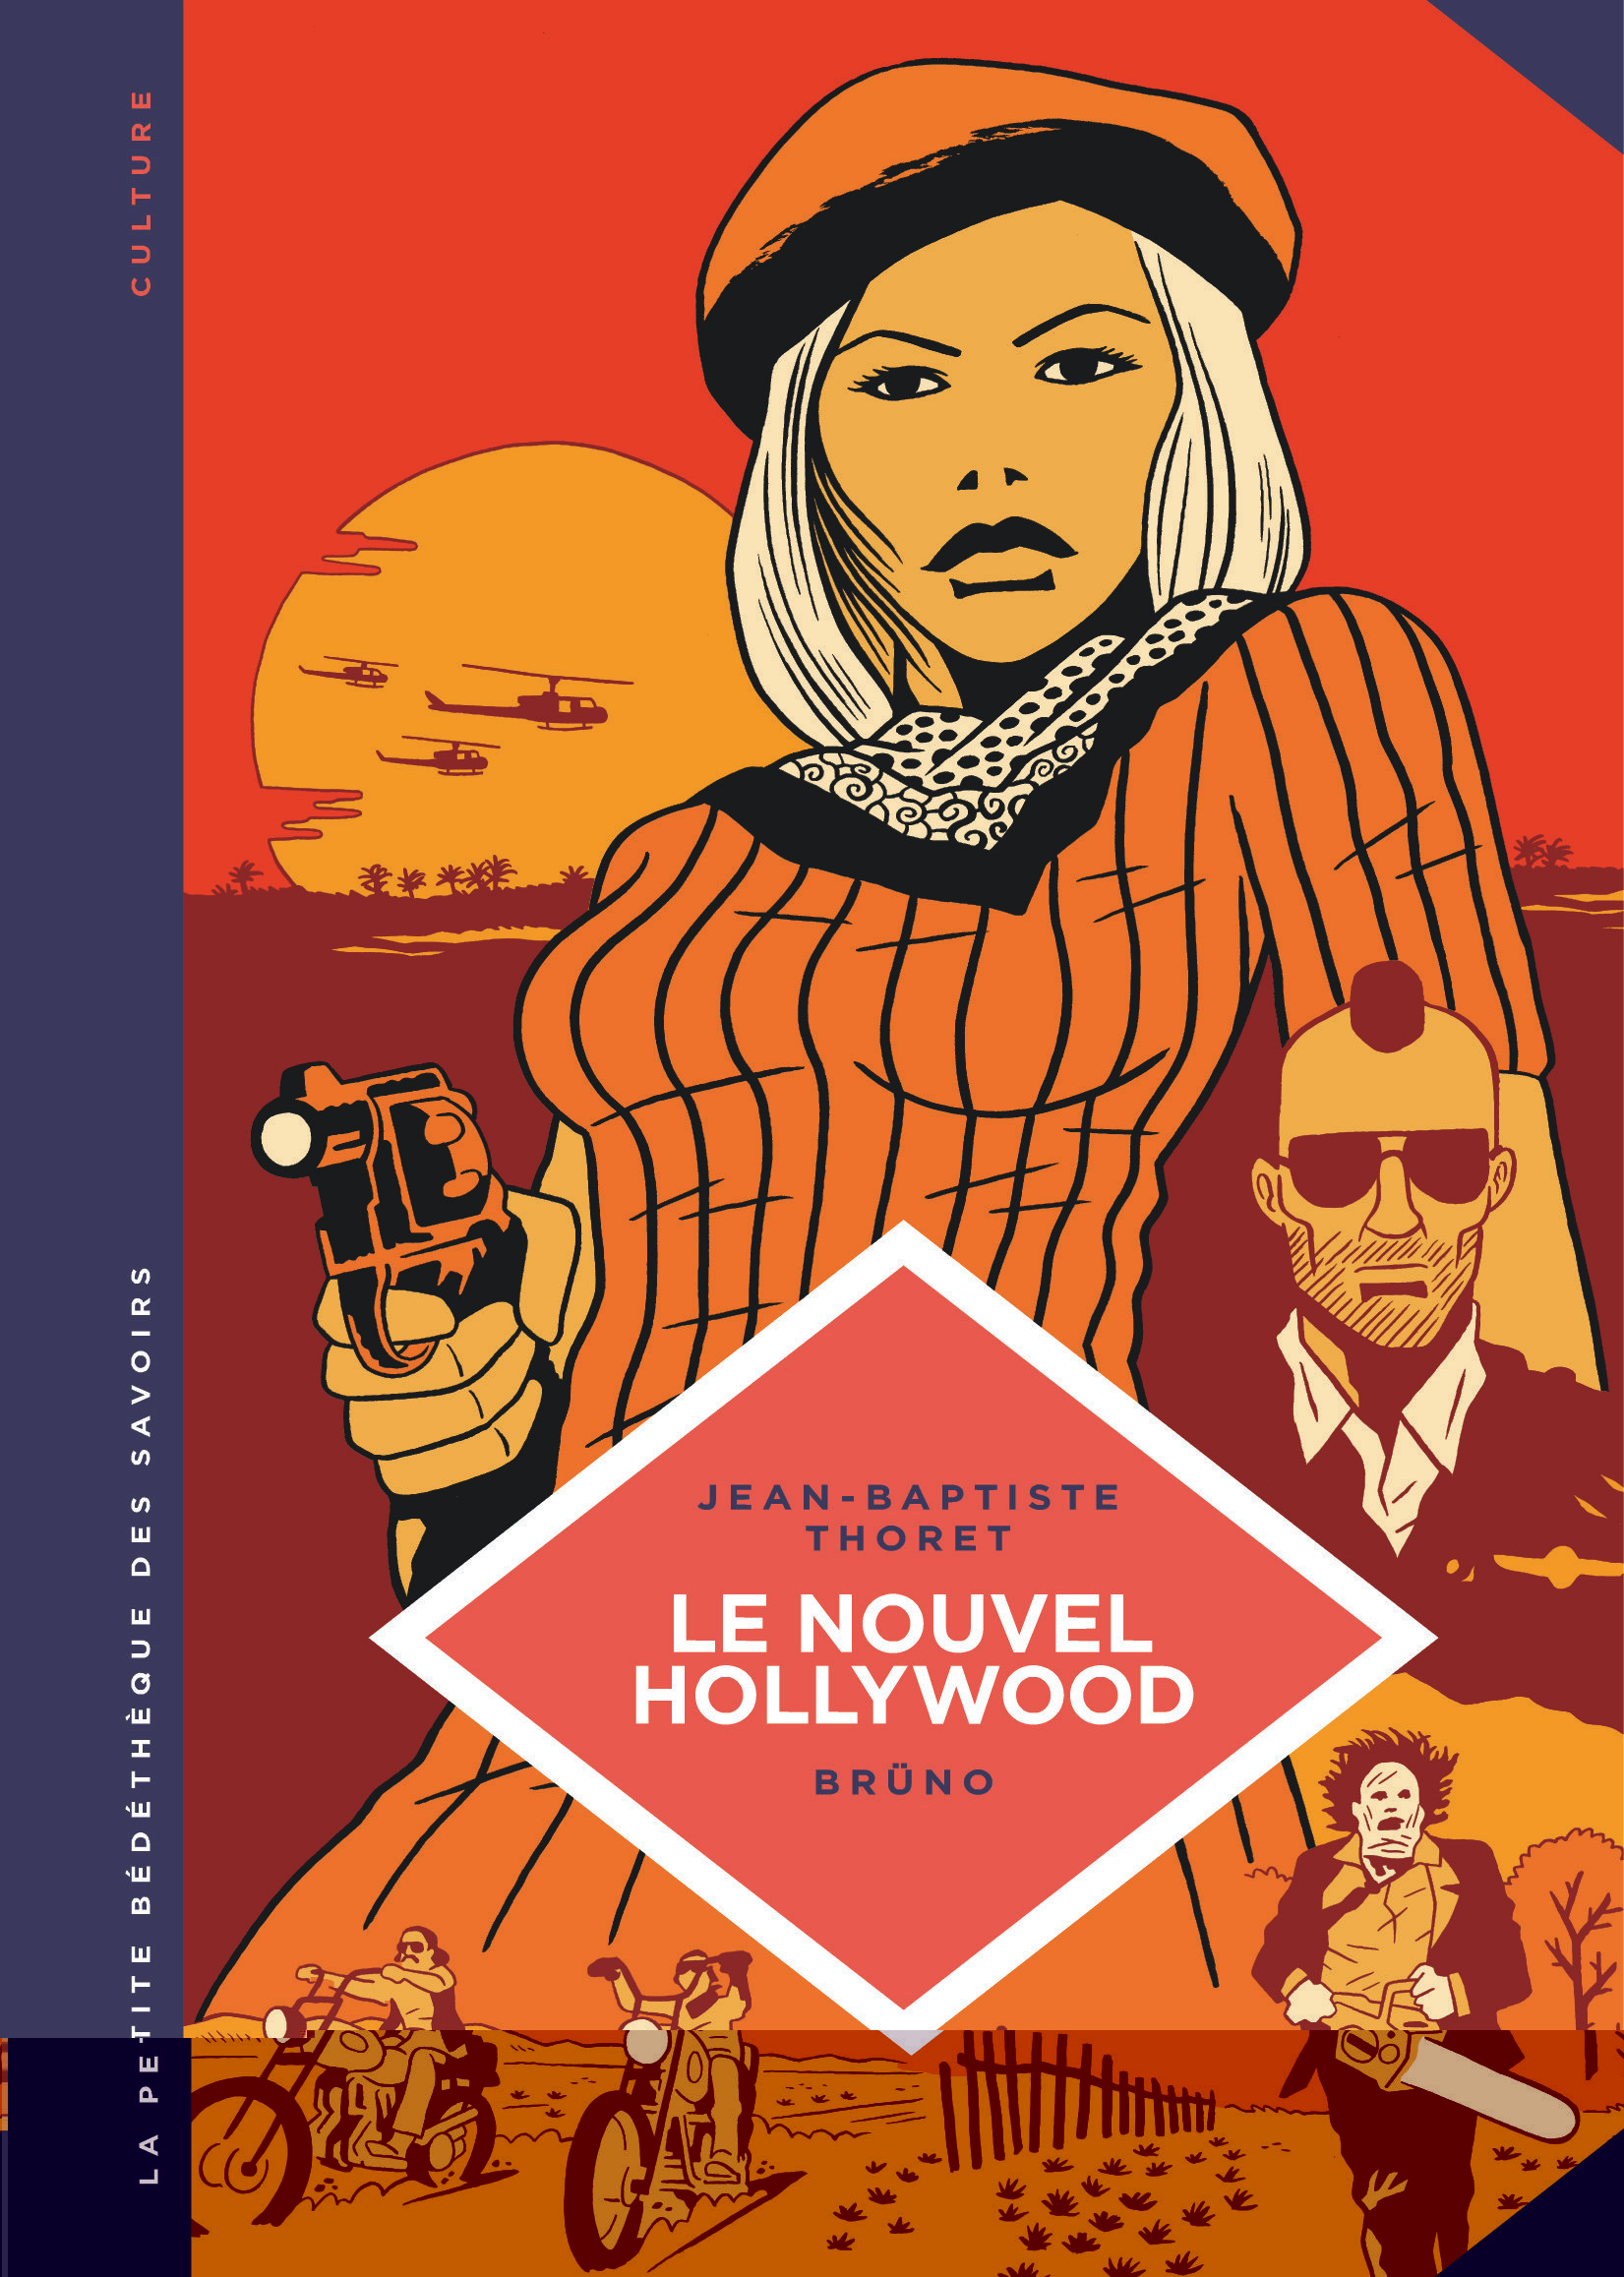 nouvel-hollywood-thoret-brc3bcno-couverture